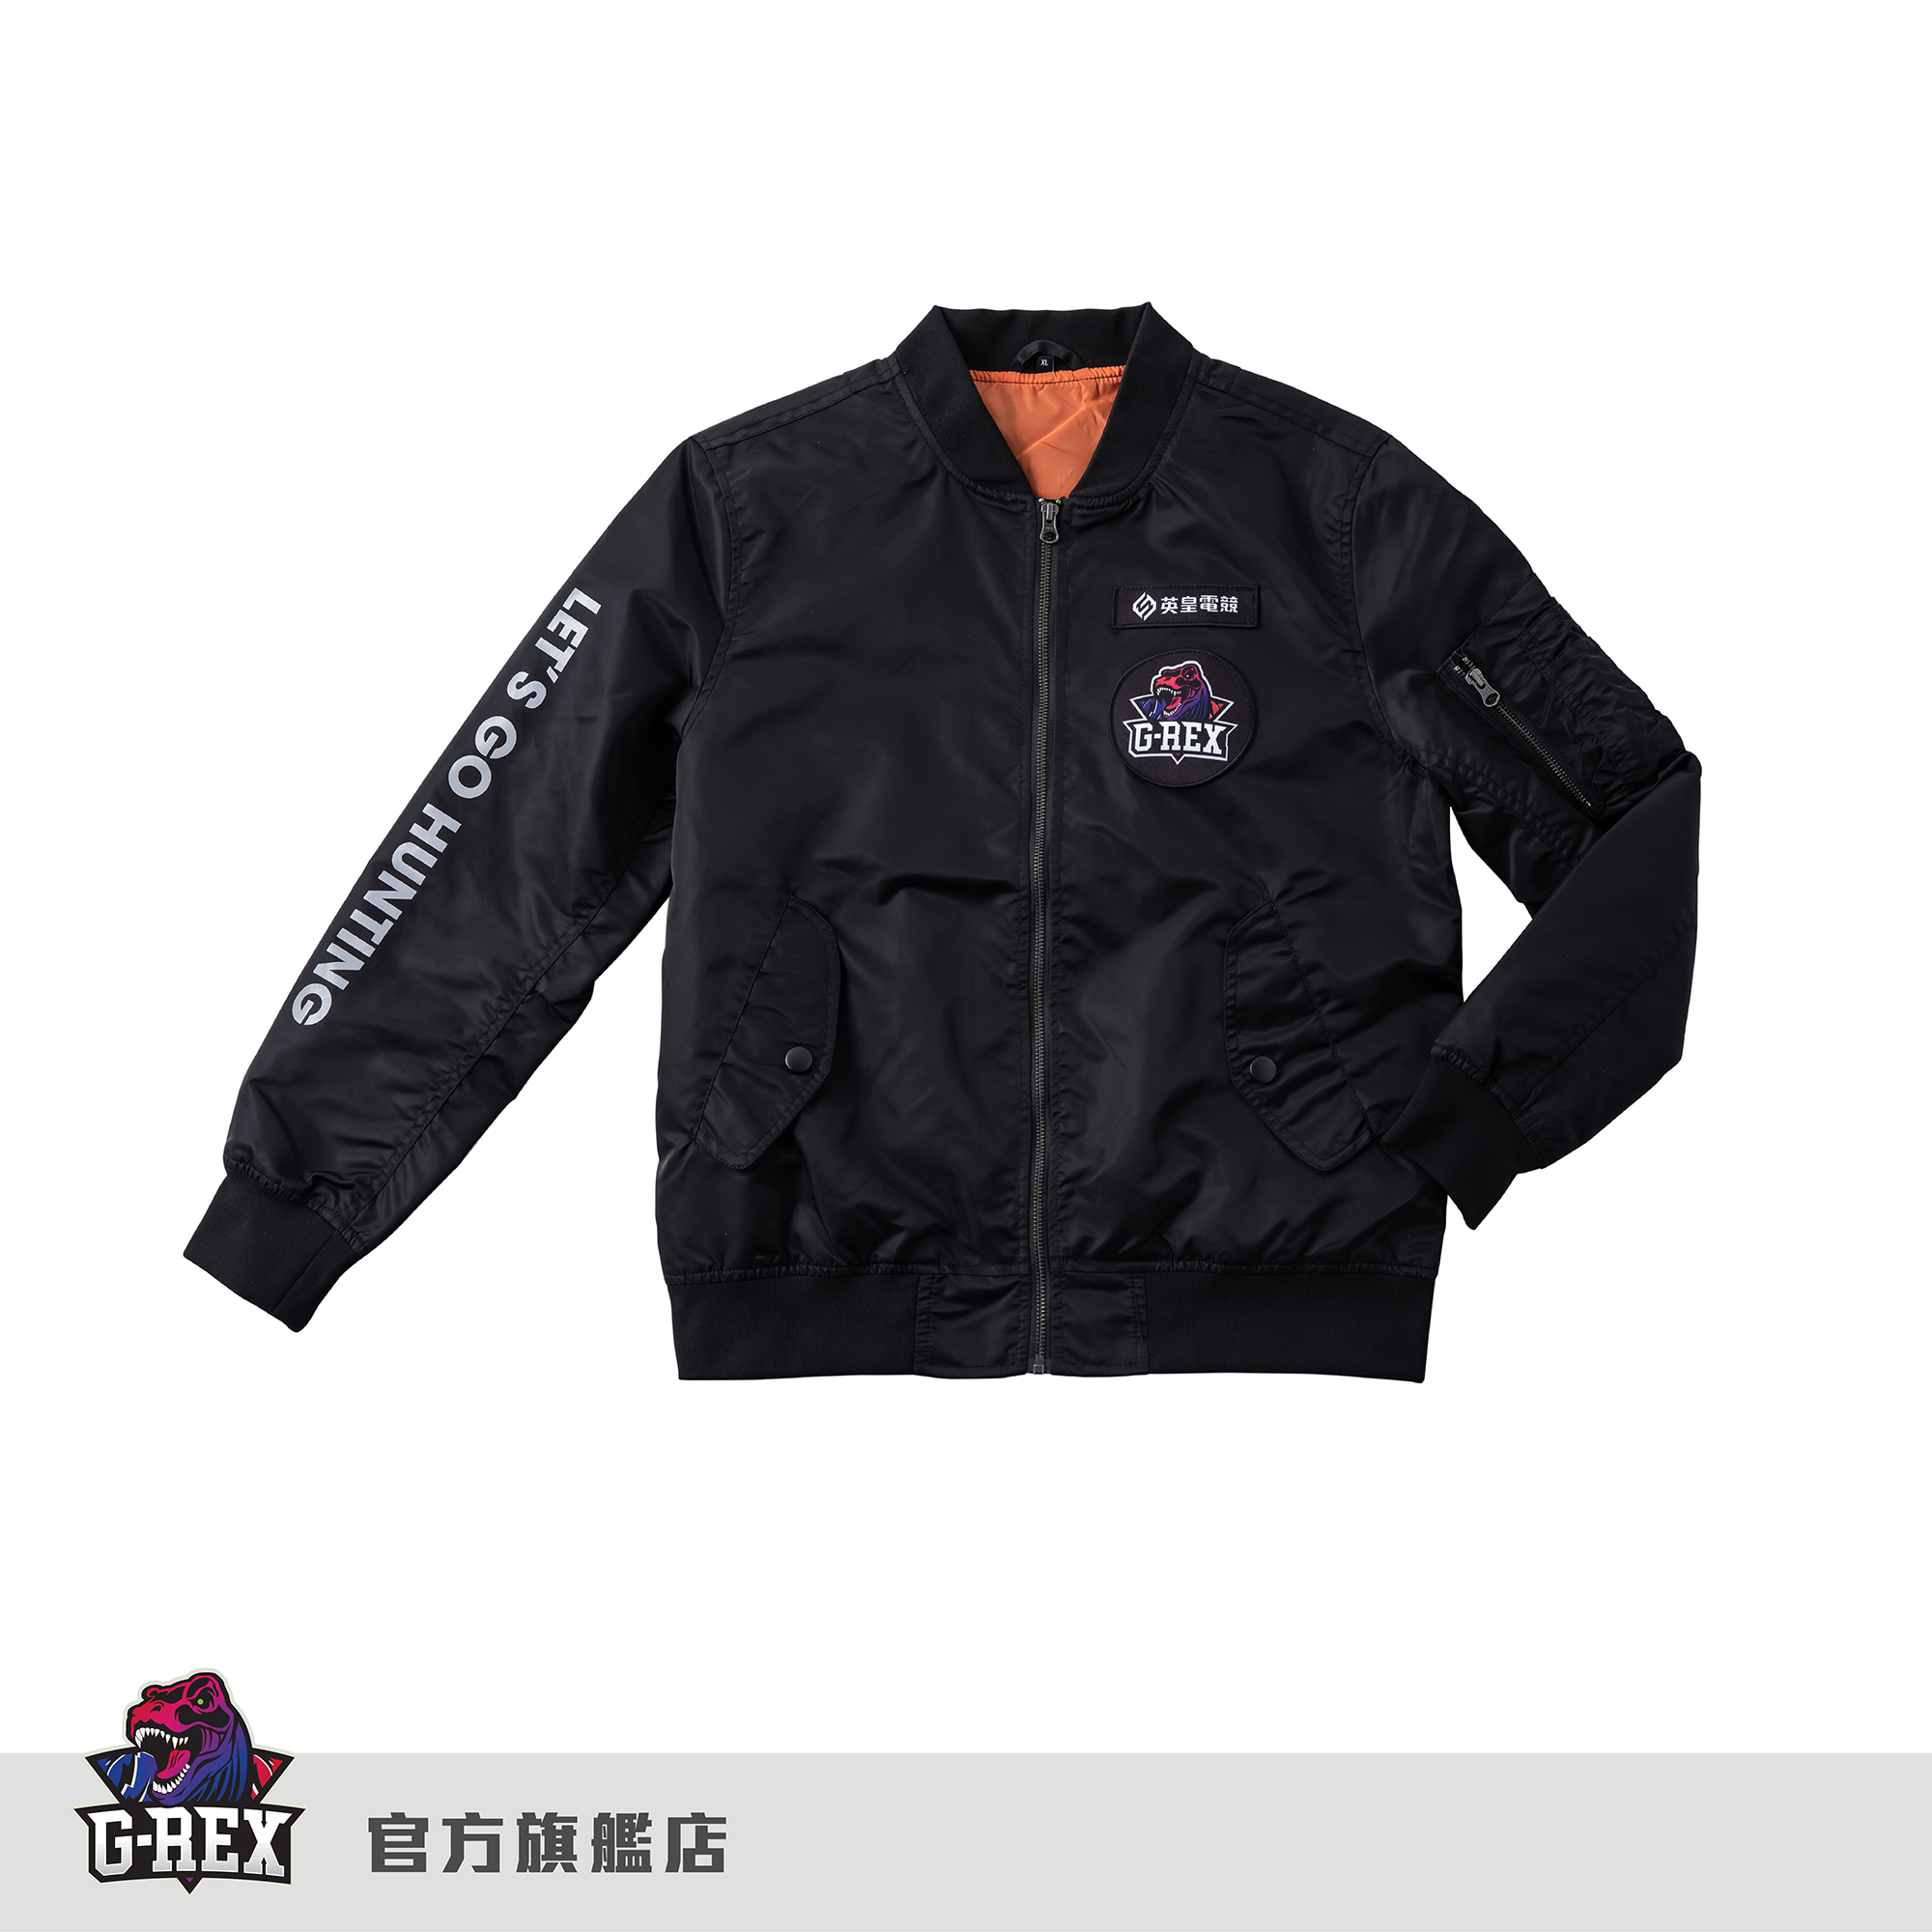 shopee_product_0603-25.png